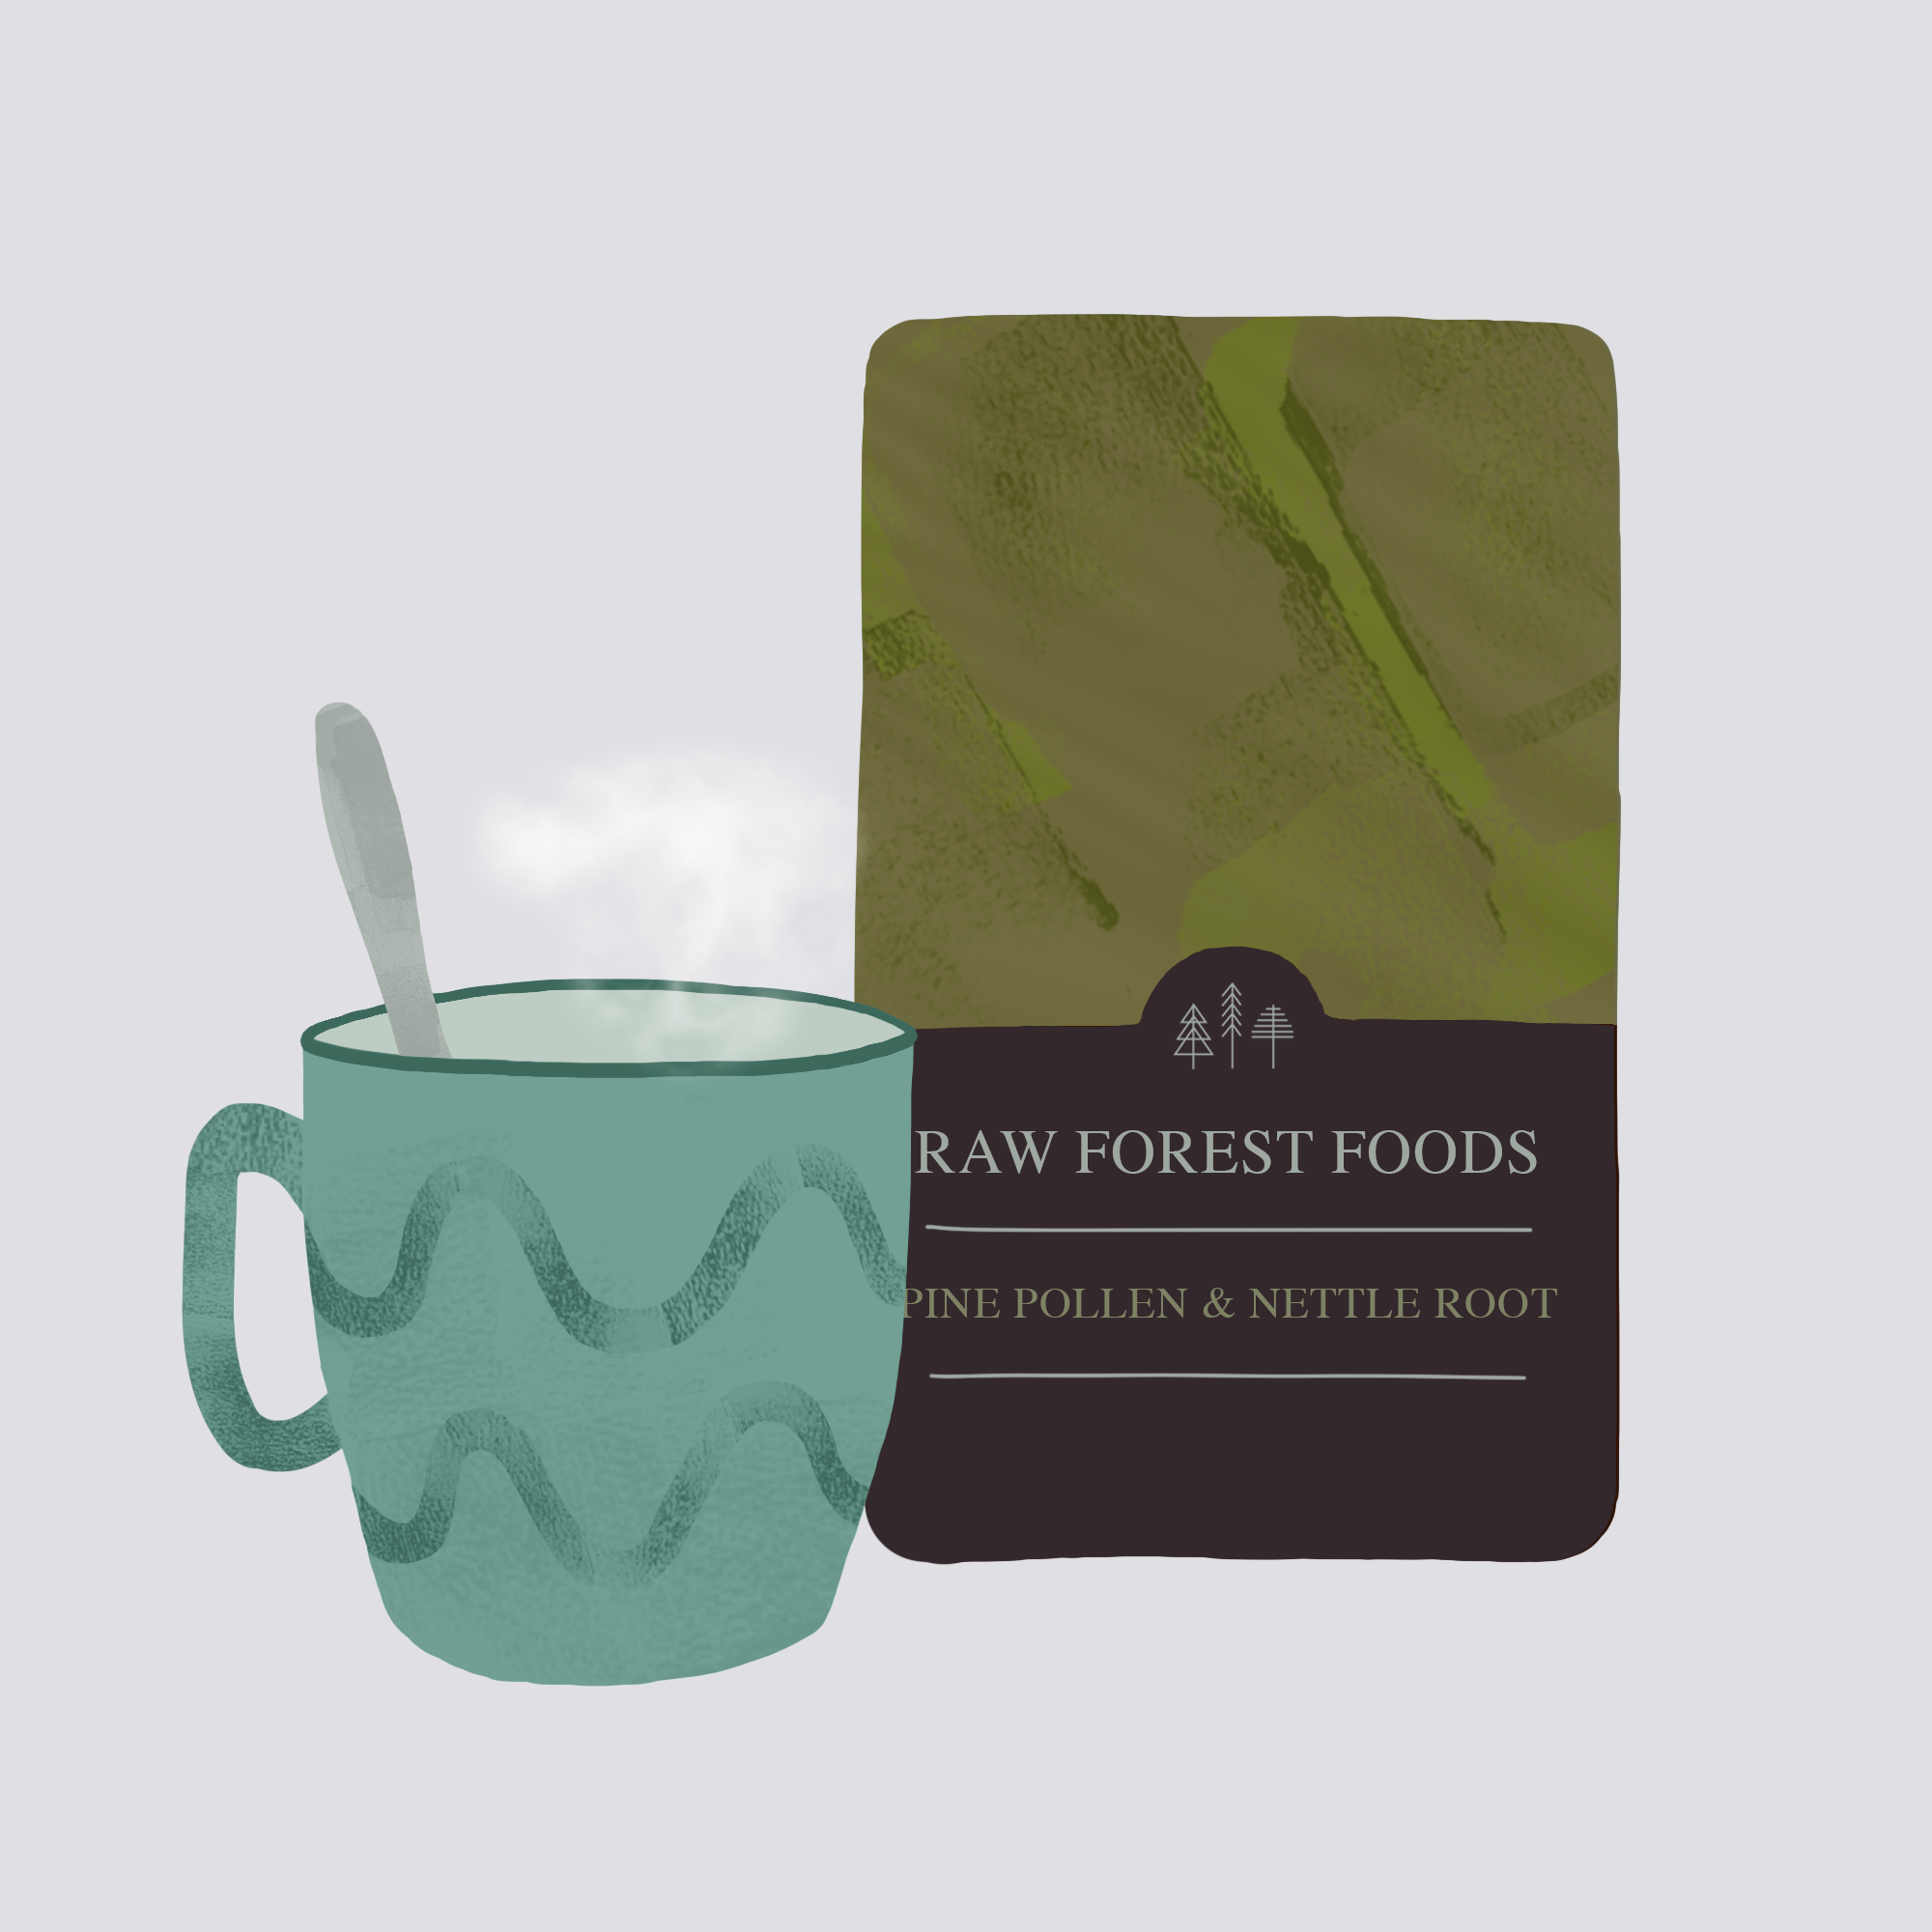 RAW Forest Foods Taking Powder Extracts